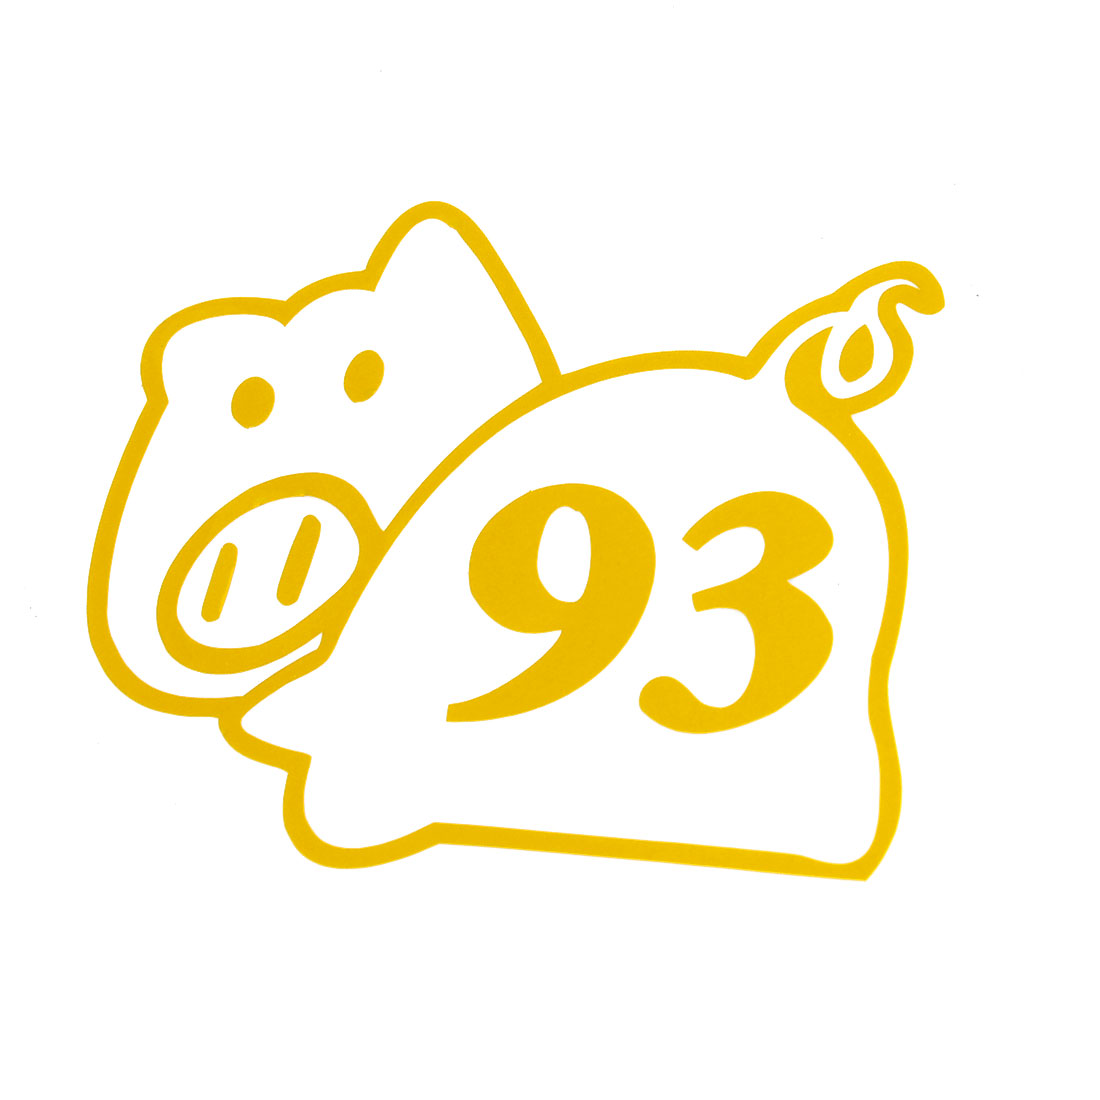 "Vehicle Car Animal Pig Shaped Sticker Ornament Decor Yellow 3.9"" x 3.9"""